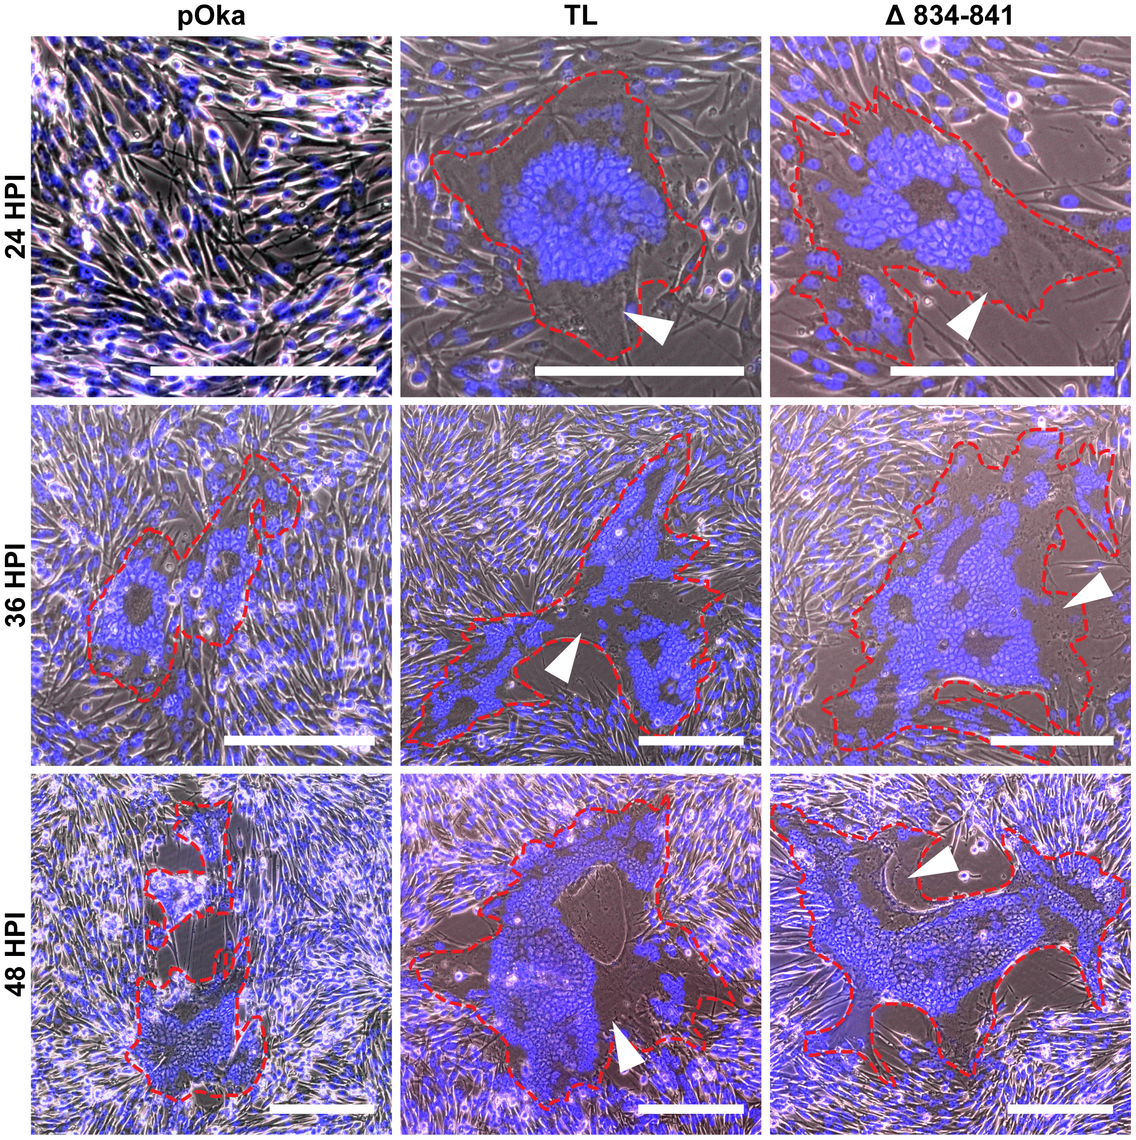 Truncation of the gHcyt causes exaggerated syncytia formation in VZV-infected melanoma cells.